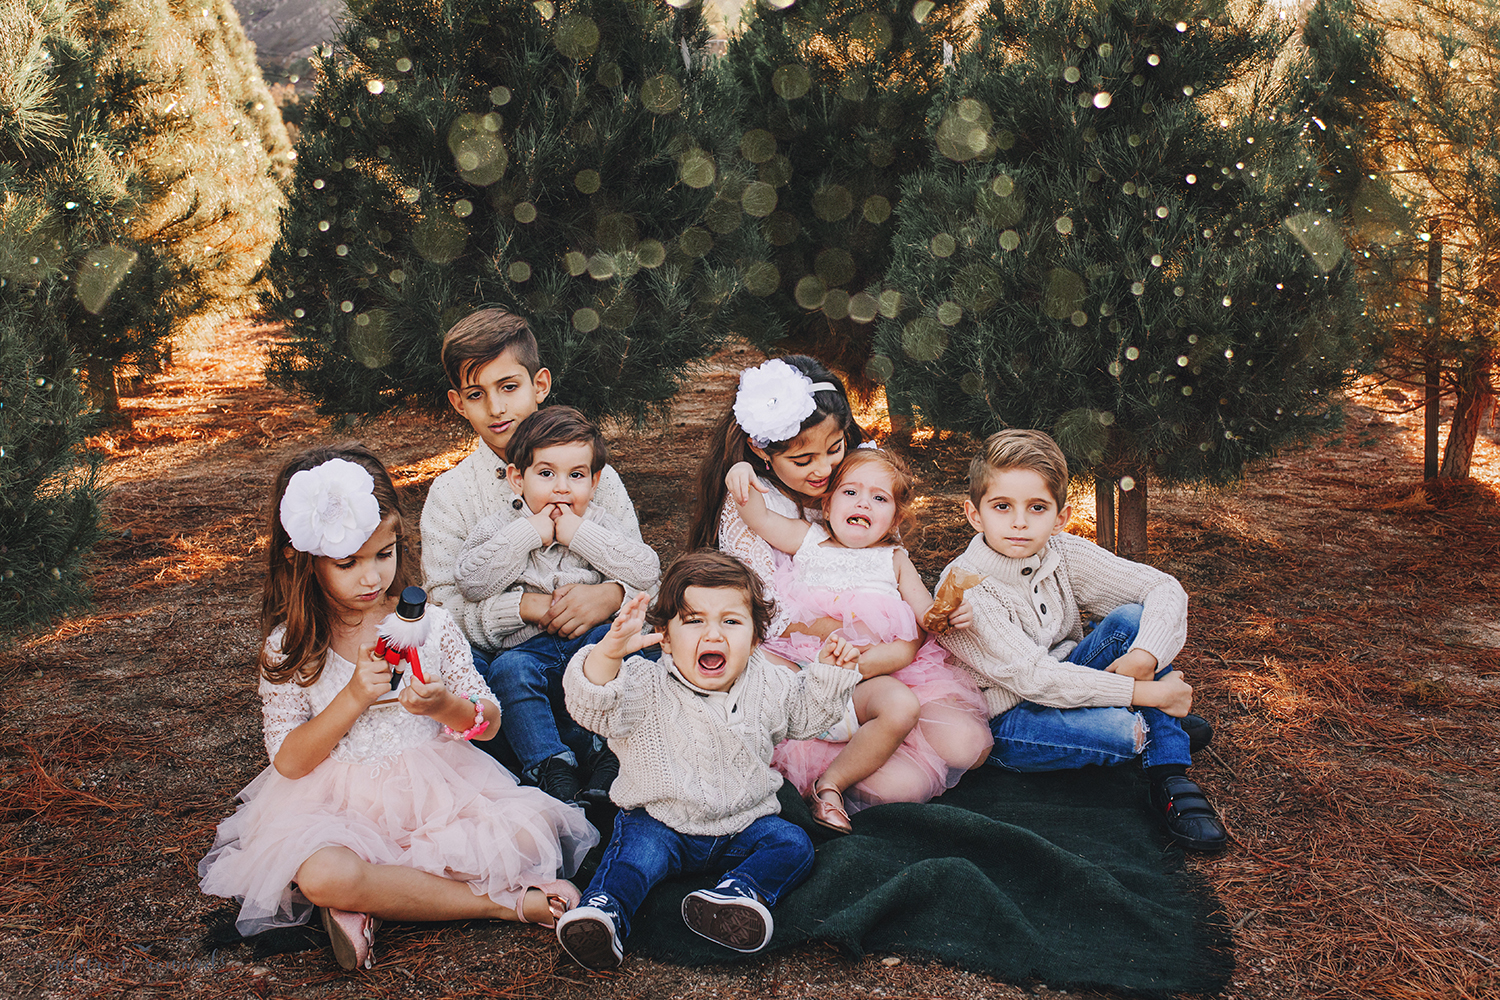 How a session with 7 children really looks- A Christmas tree farm portrait by Nature's Reward Photography- if you can't laugh through this, don't photograph kids!